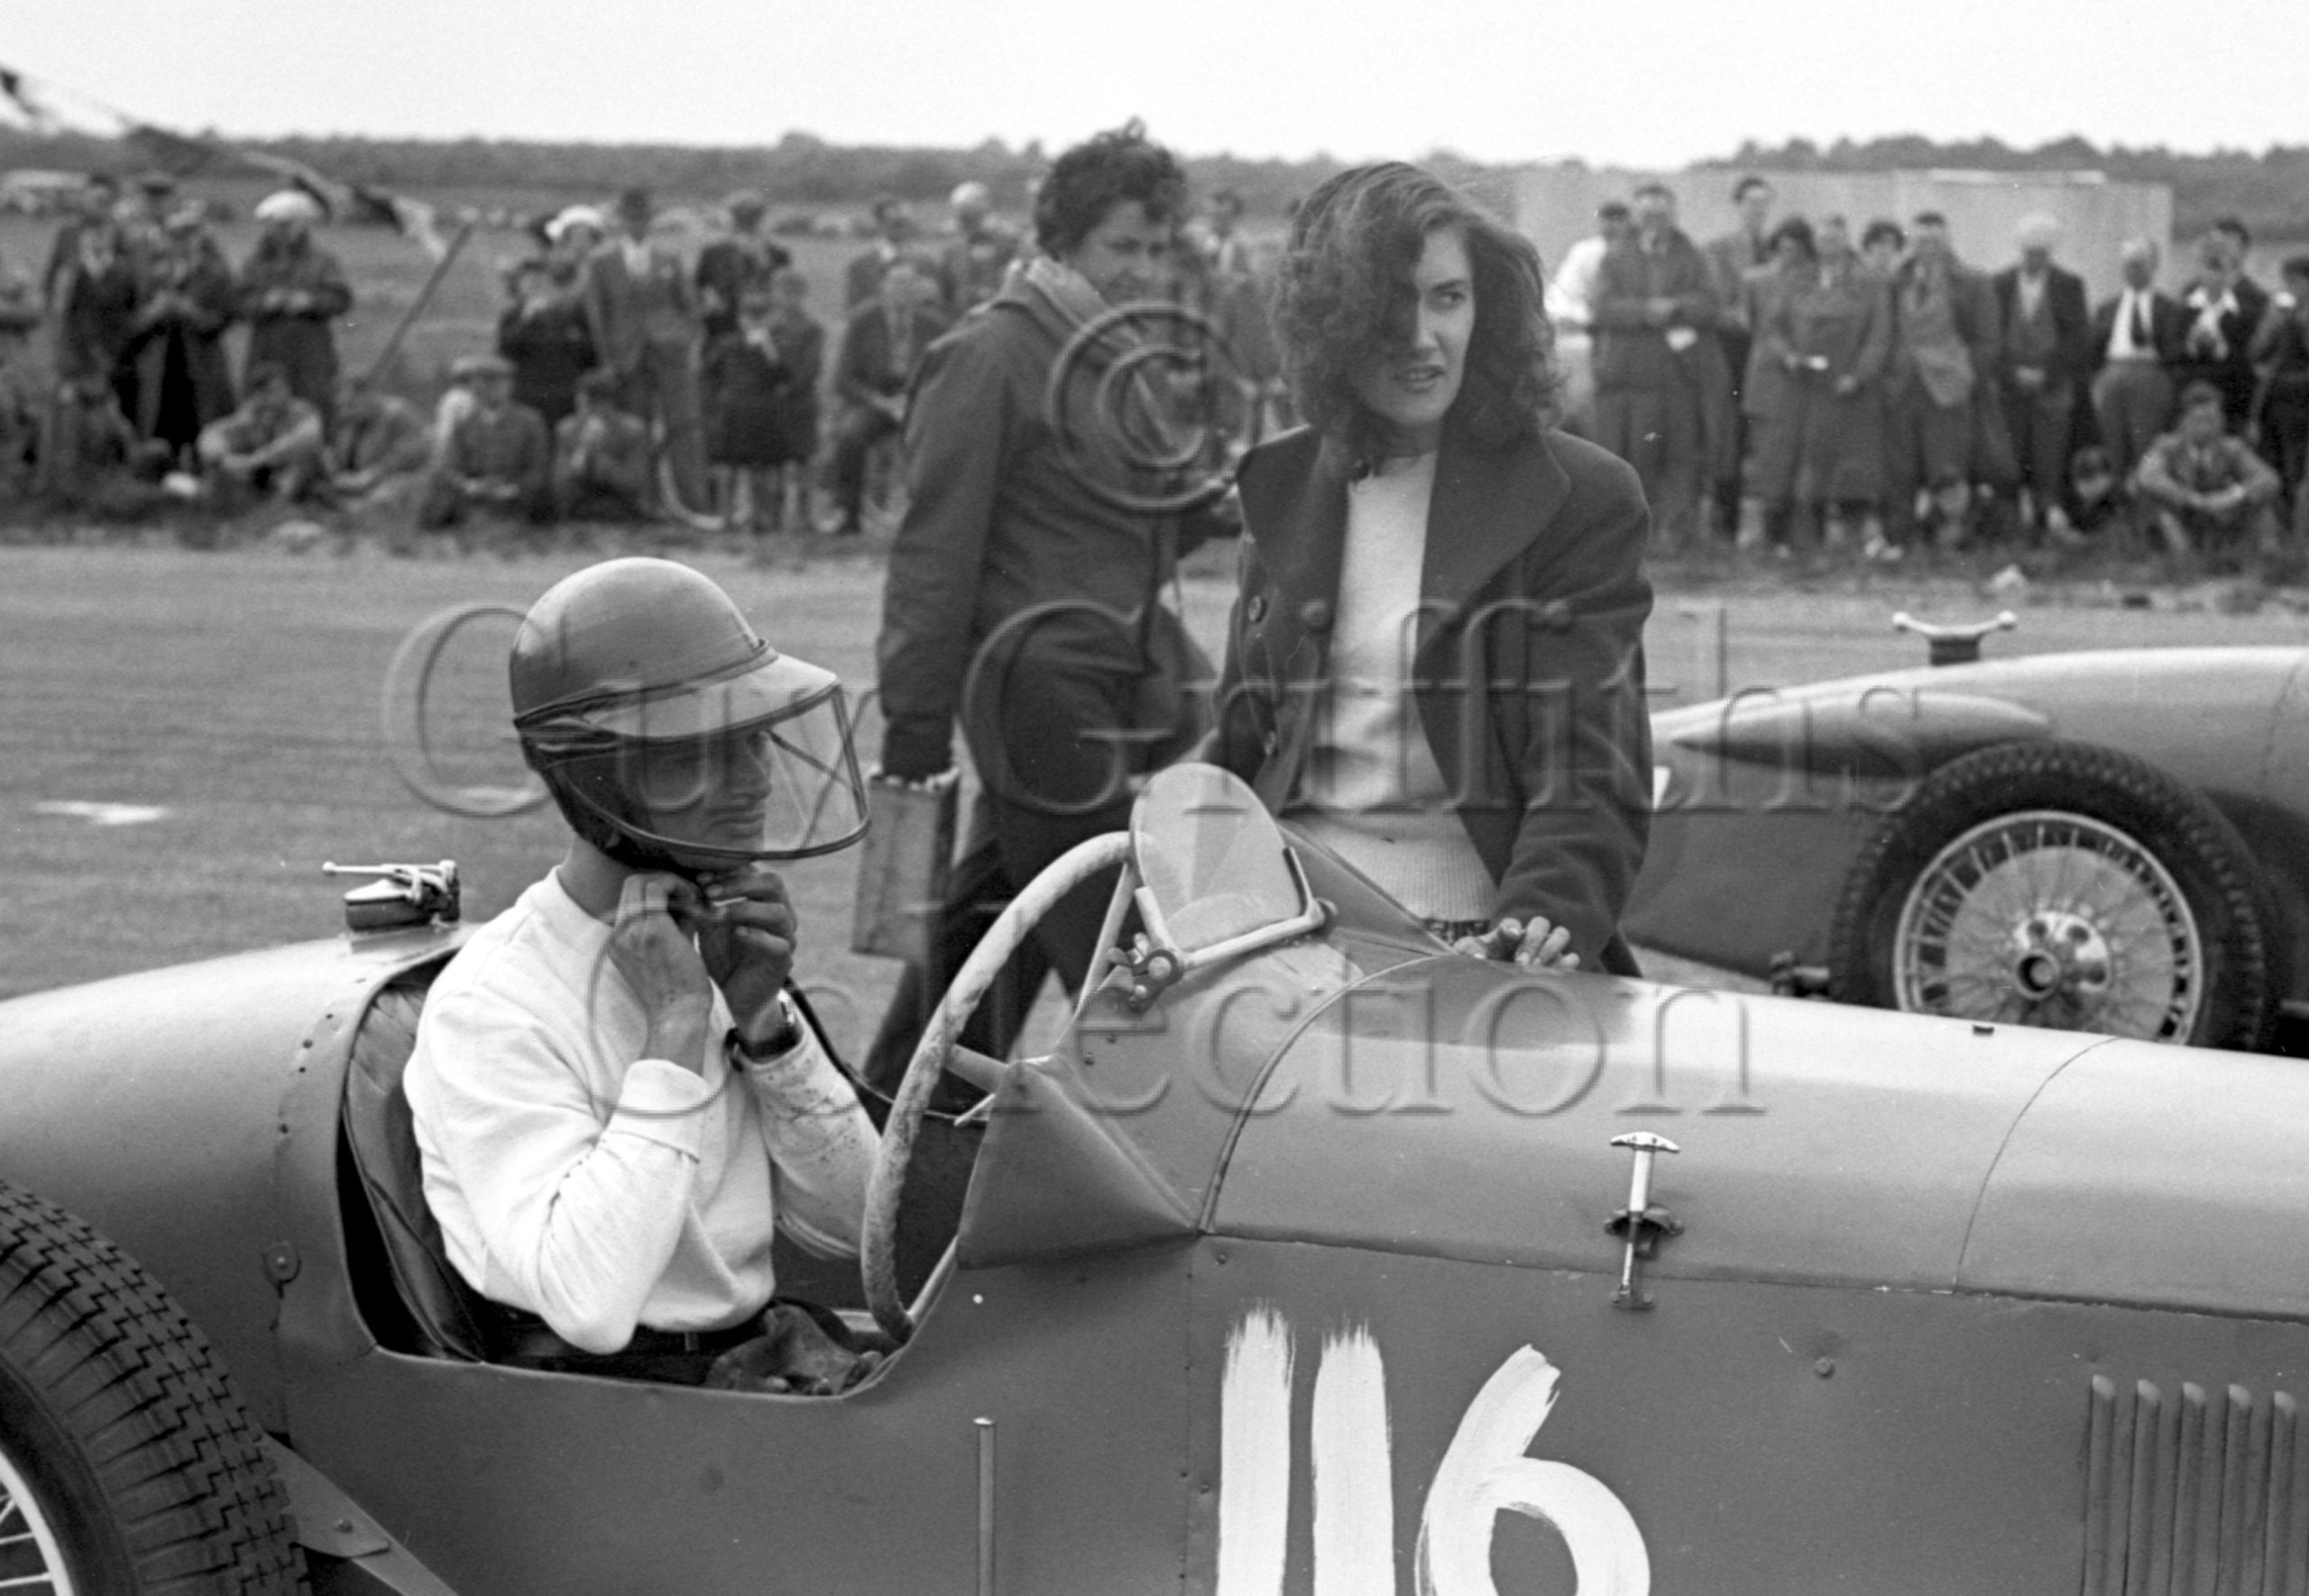 33-242–R-Dutt–Maserati–Silverstone–24-06-1950.jpg - Guy Griffiths Collection